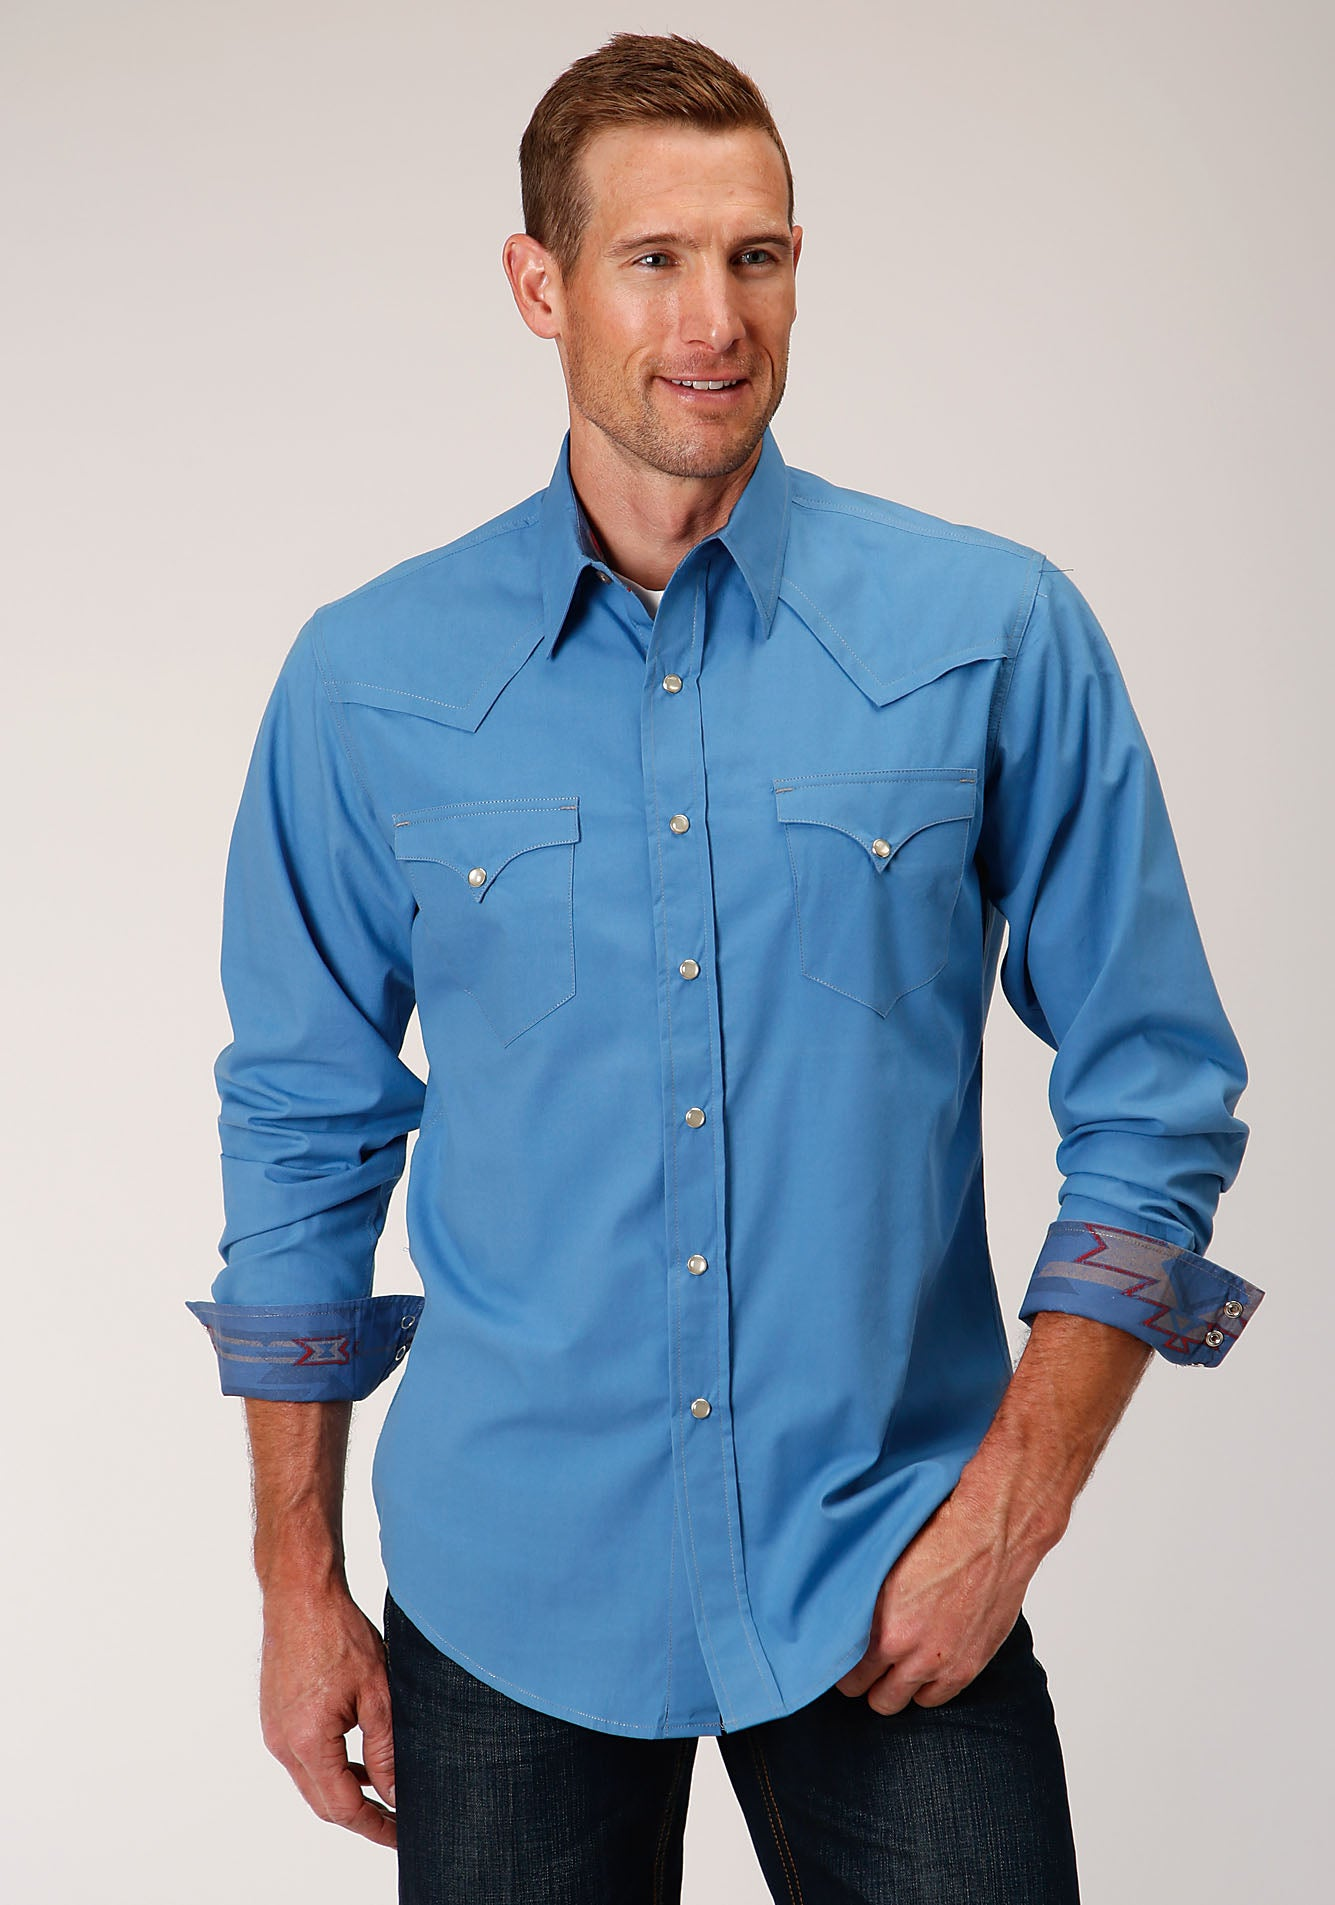 ROPER MENS BLUE 00106 SOLID POPLIN - BLUE WEST MADE COLLECTION LONG SLEEVE